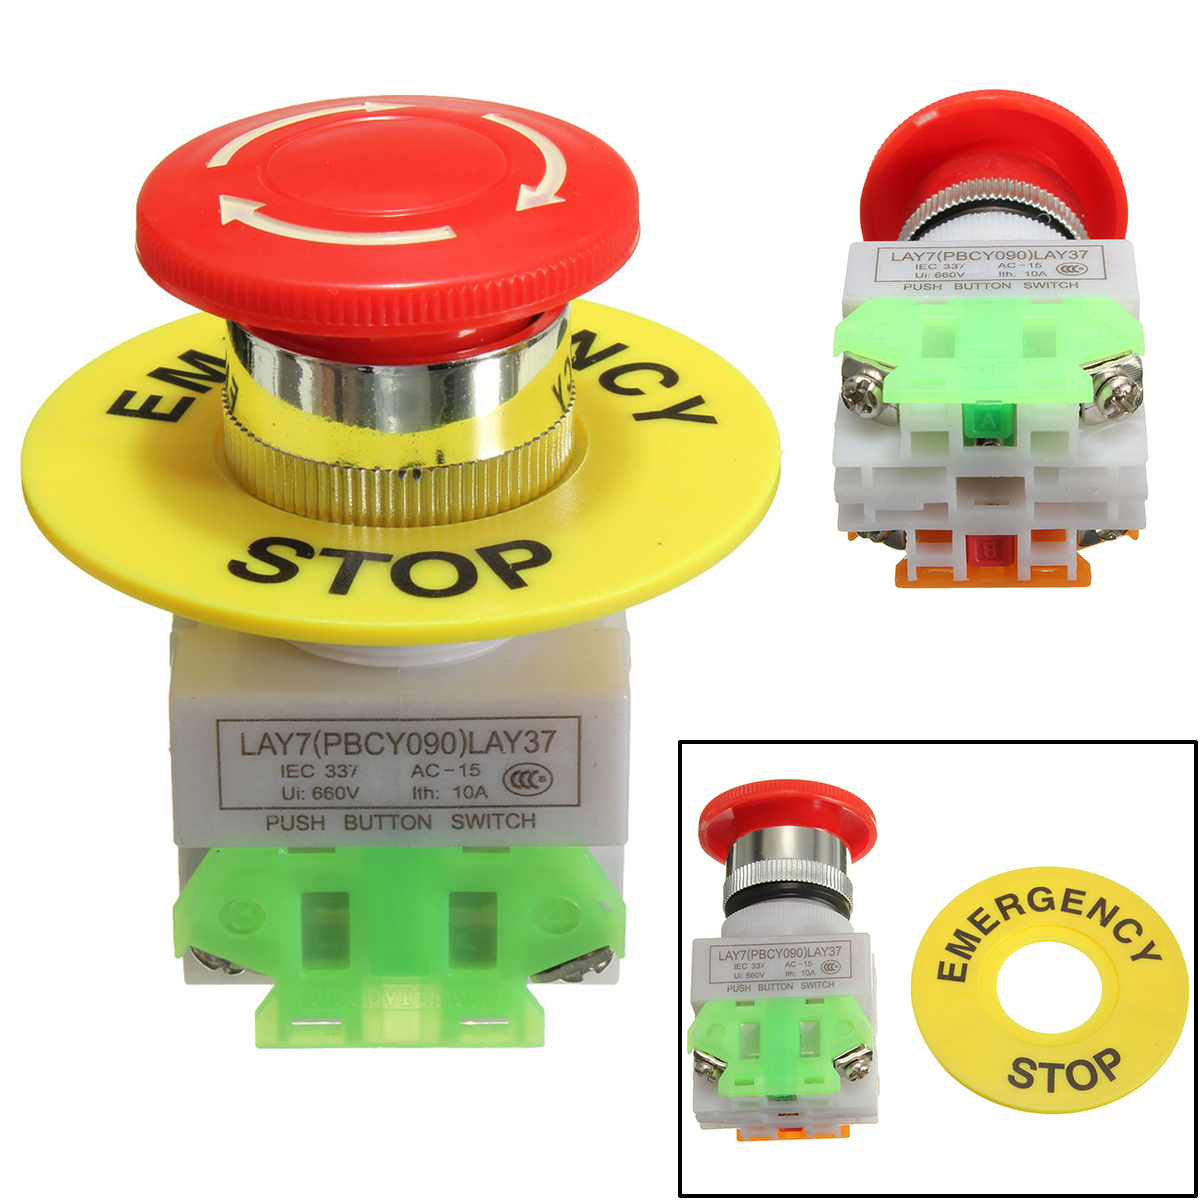 цена на 1pc New Emergency Stop Push Button Switch Self Locking Red Mushroom Switch 660V 10A